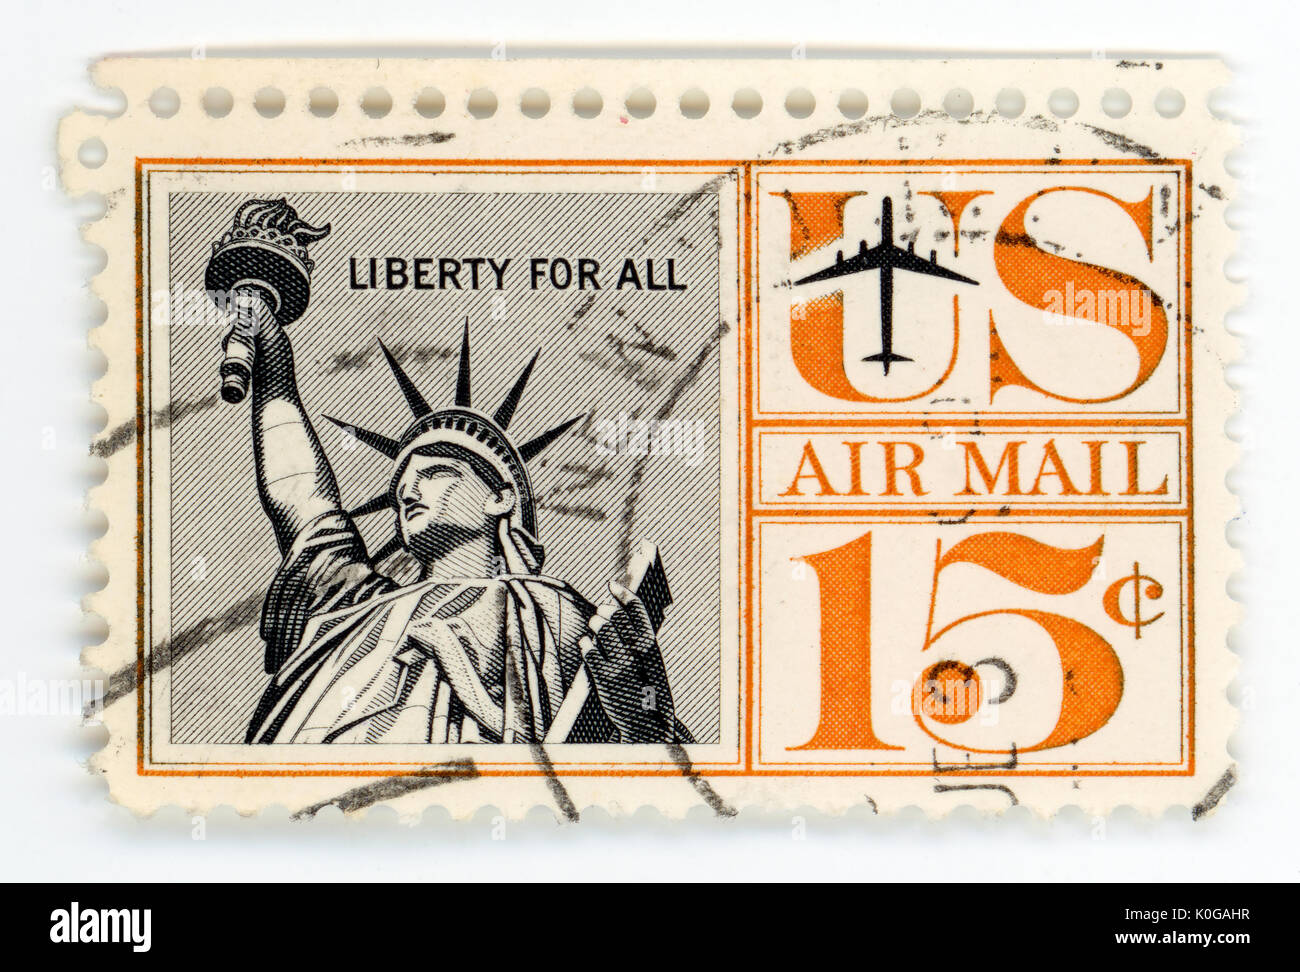 Stamp Usa Airmail Stock Photos Amp Stamp Usa Airmail Stock Images Alamy